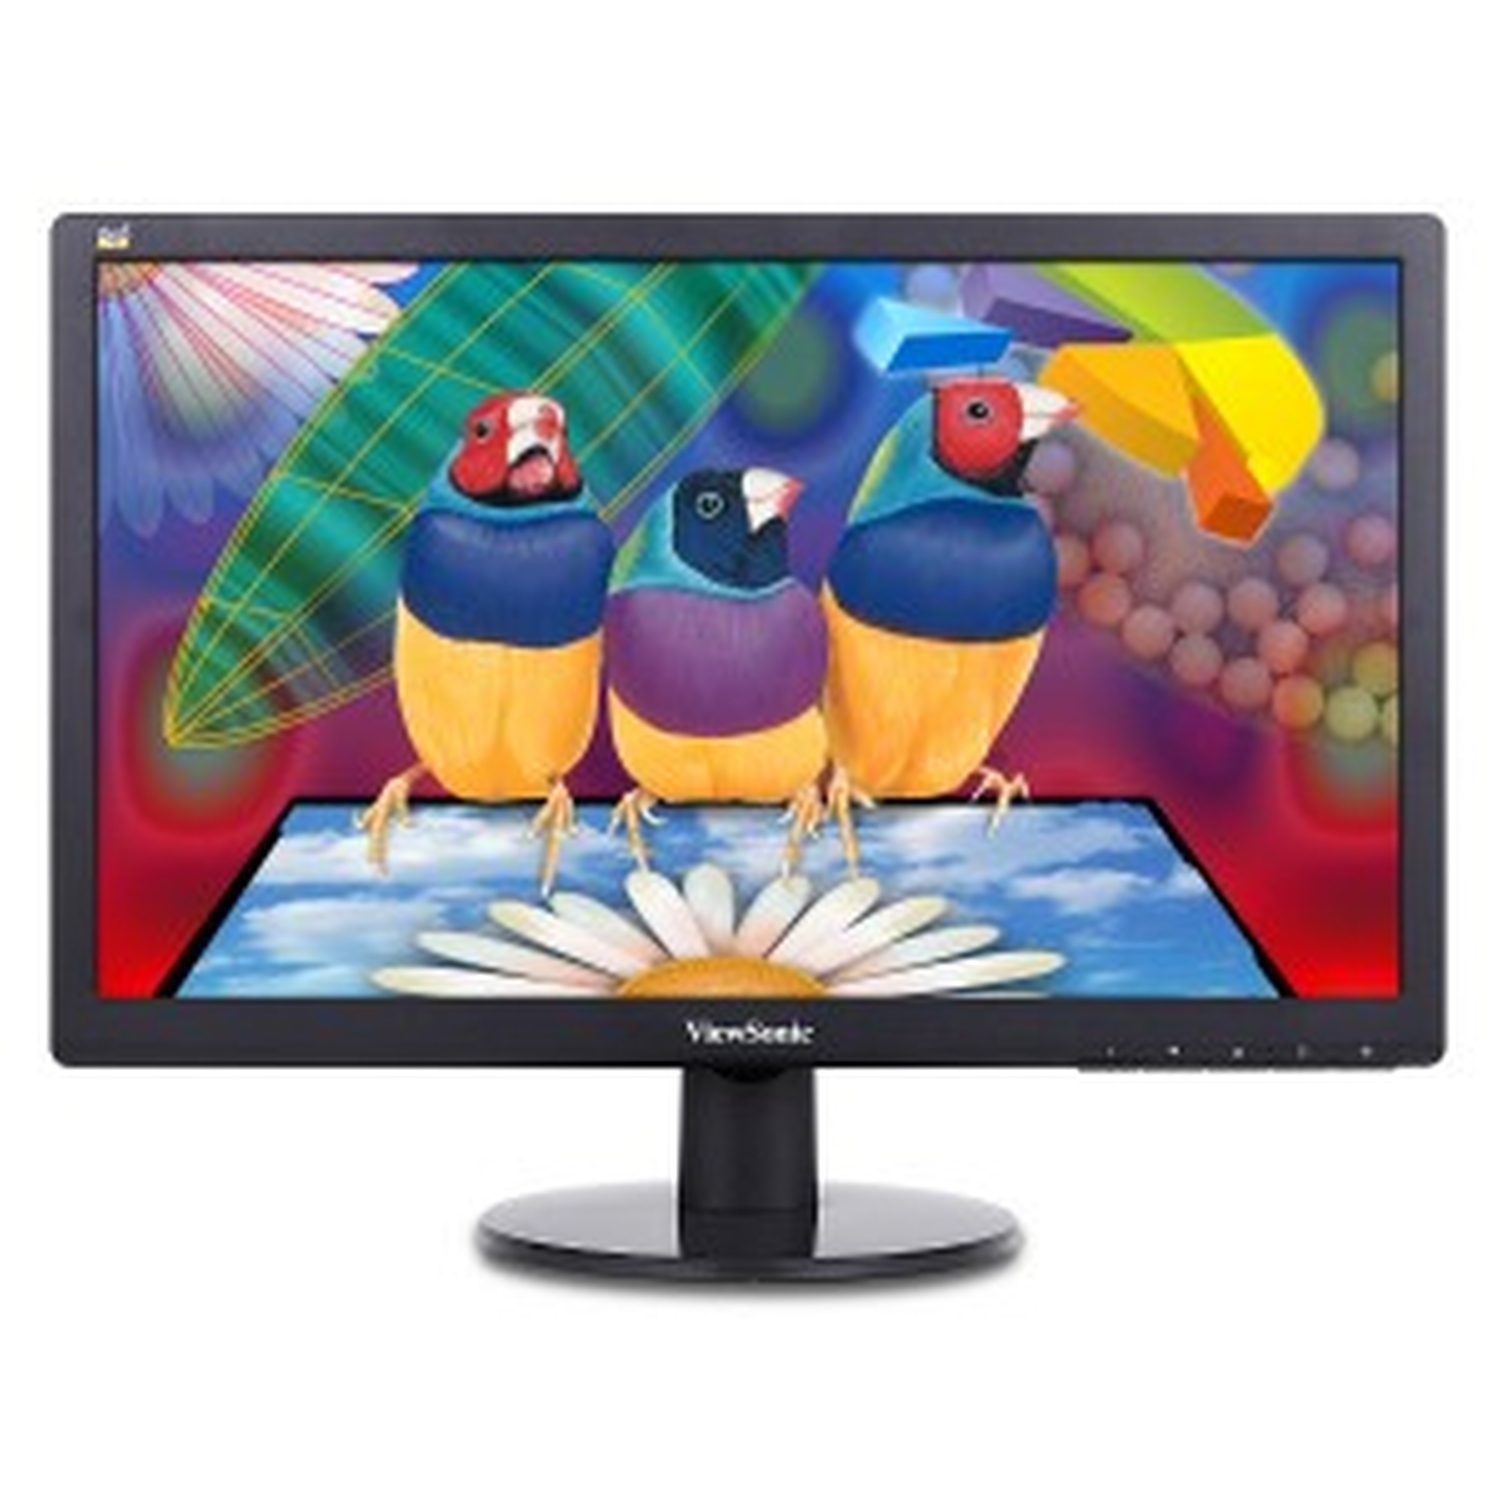 lcd monitor technology and tests techmindorg - HD